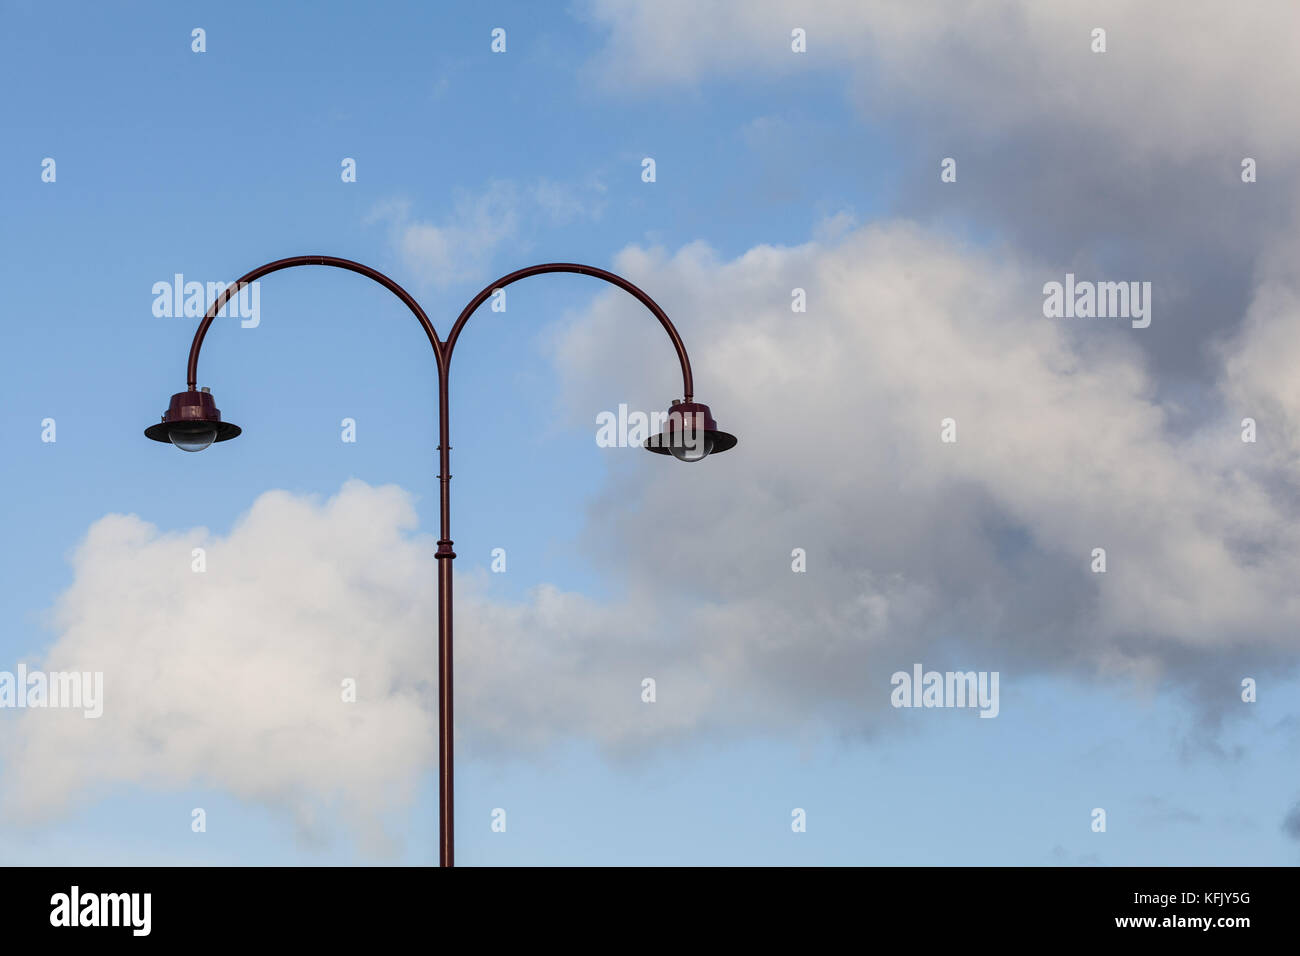 Vintage arched street light closeup on blue sky, fluffy clouds as background - Stock Image